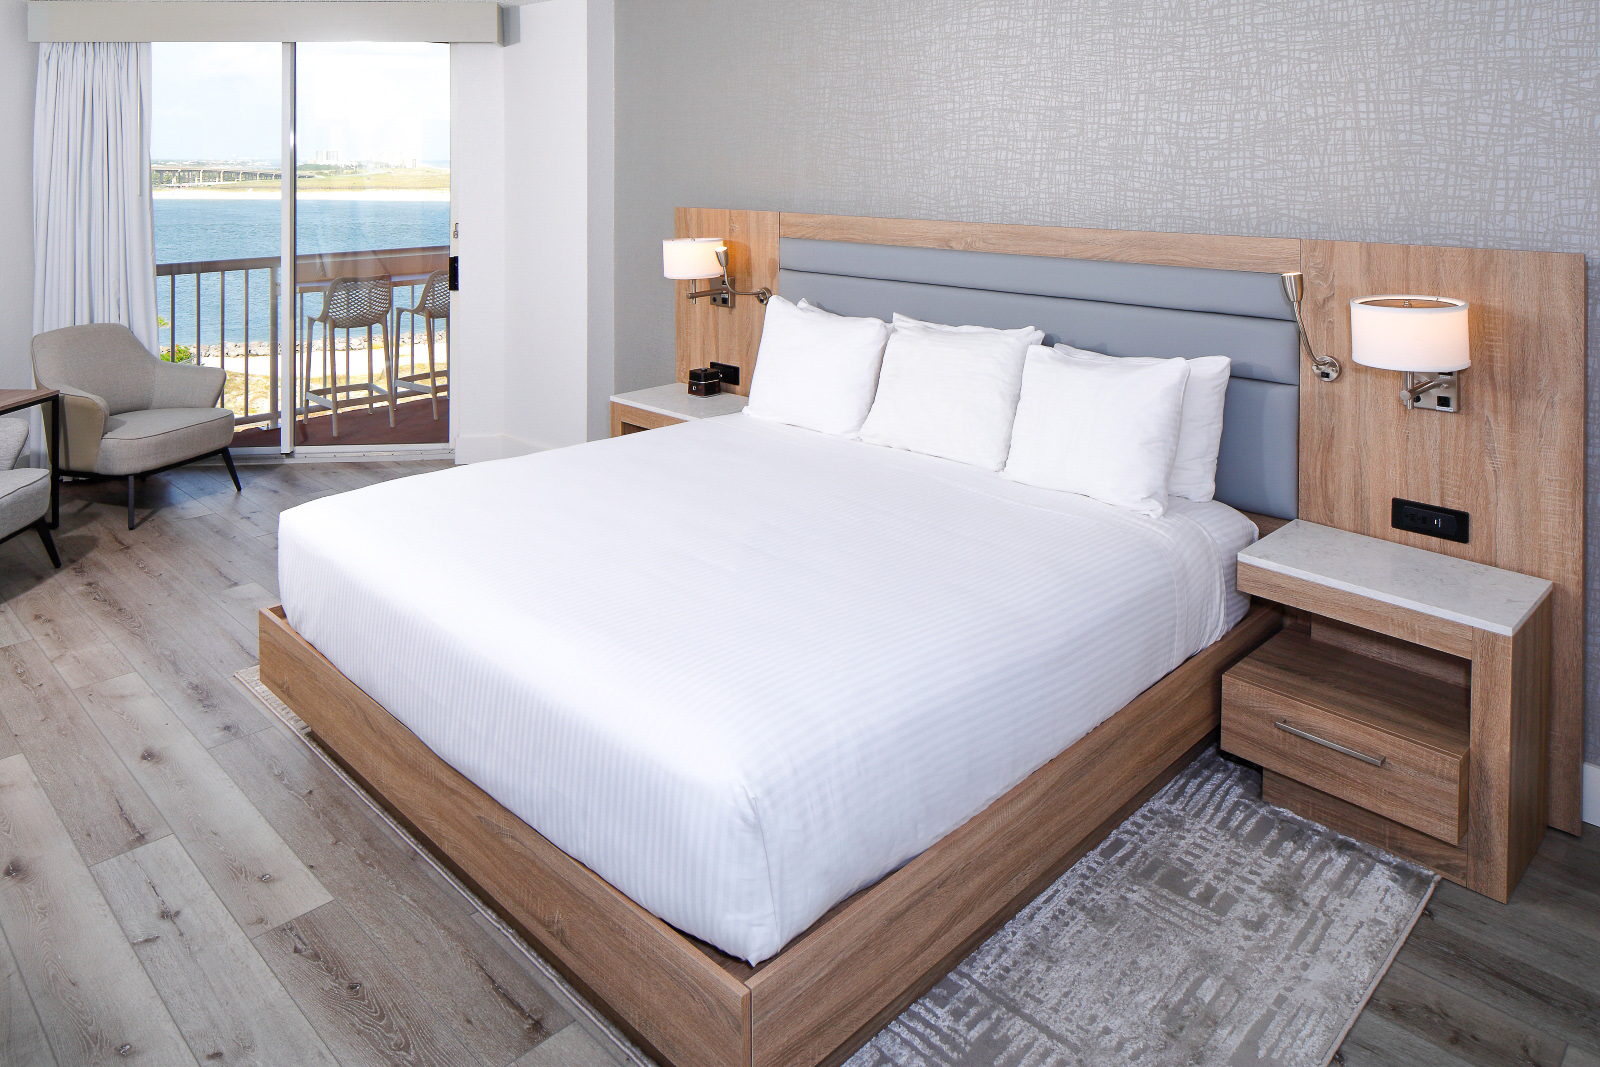 Perdido Beach Pass View Room featuring a King bed